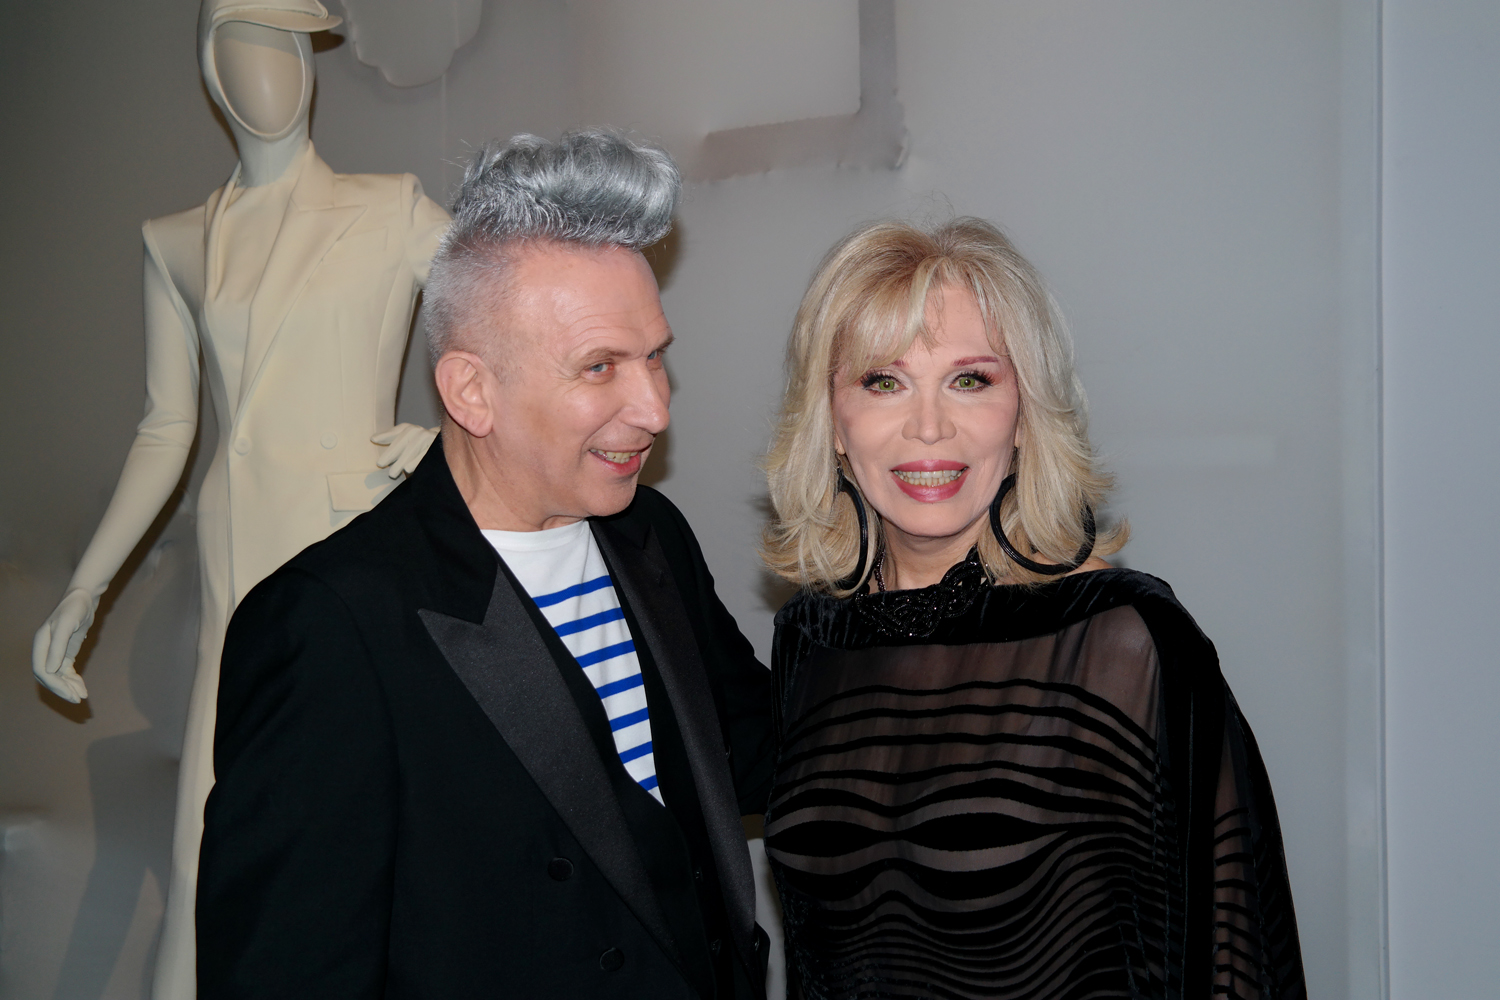 Jean-Paul-Gaultier-Amanda-Lear-vernisssage-exposition-Grand-Palais-Paris-VIP-muse-fashion-mode-photo-by-United-States-of-paris-blog